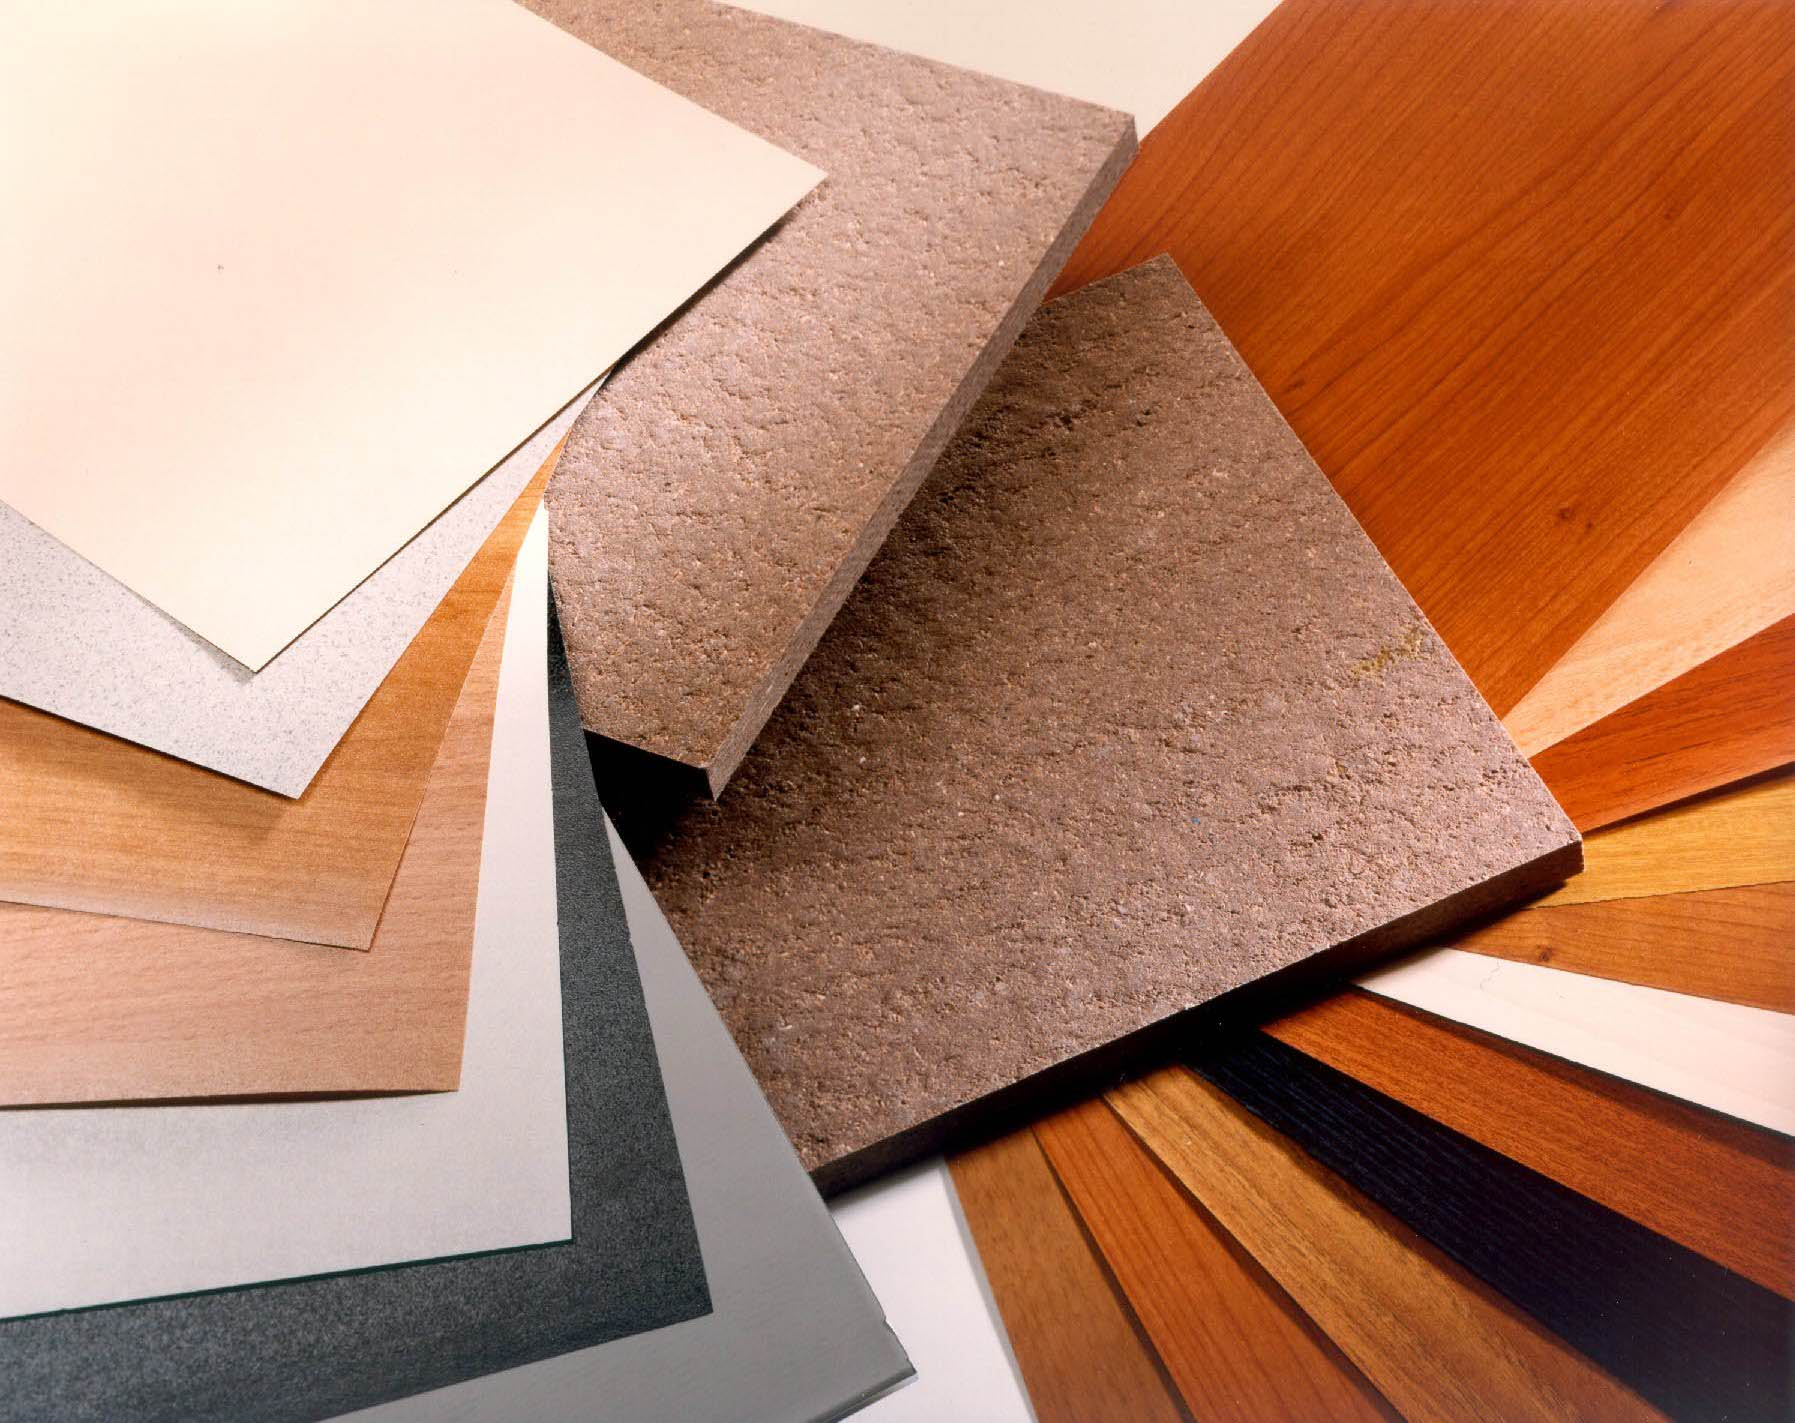 WPC-WOOD PLASTIC COMPOSITES